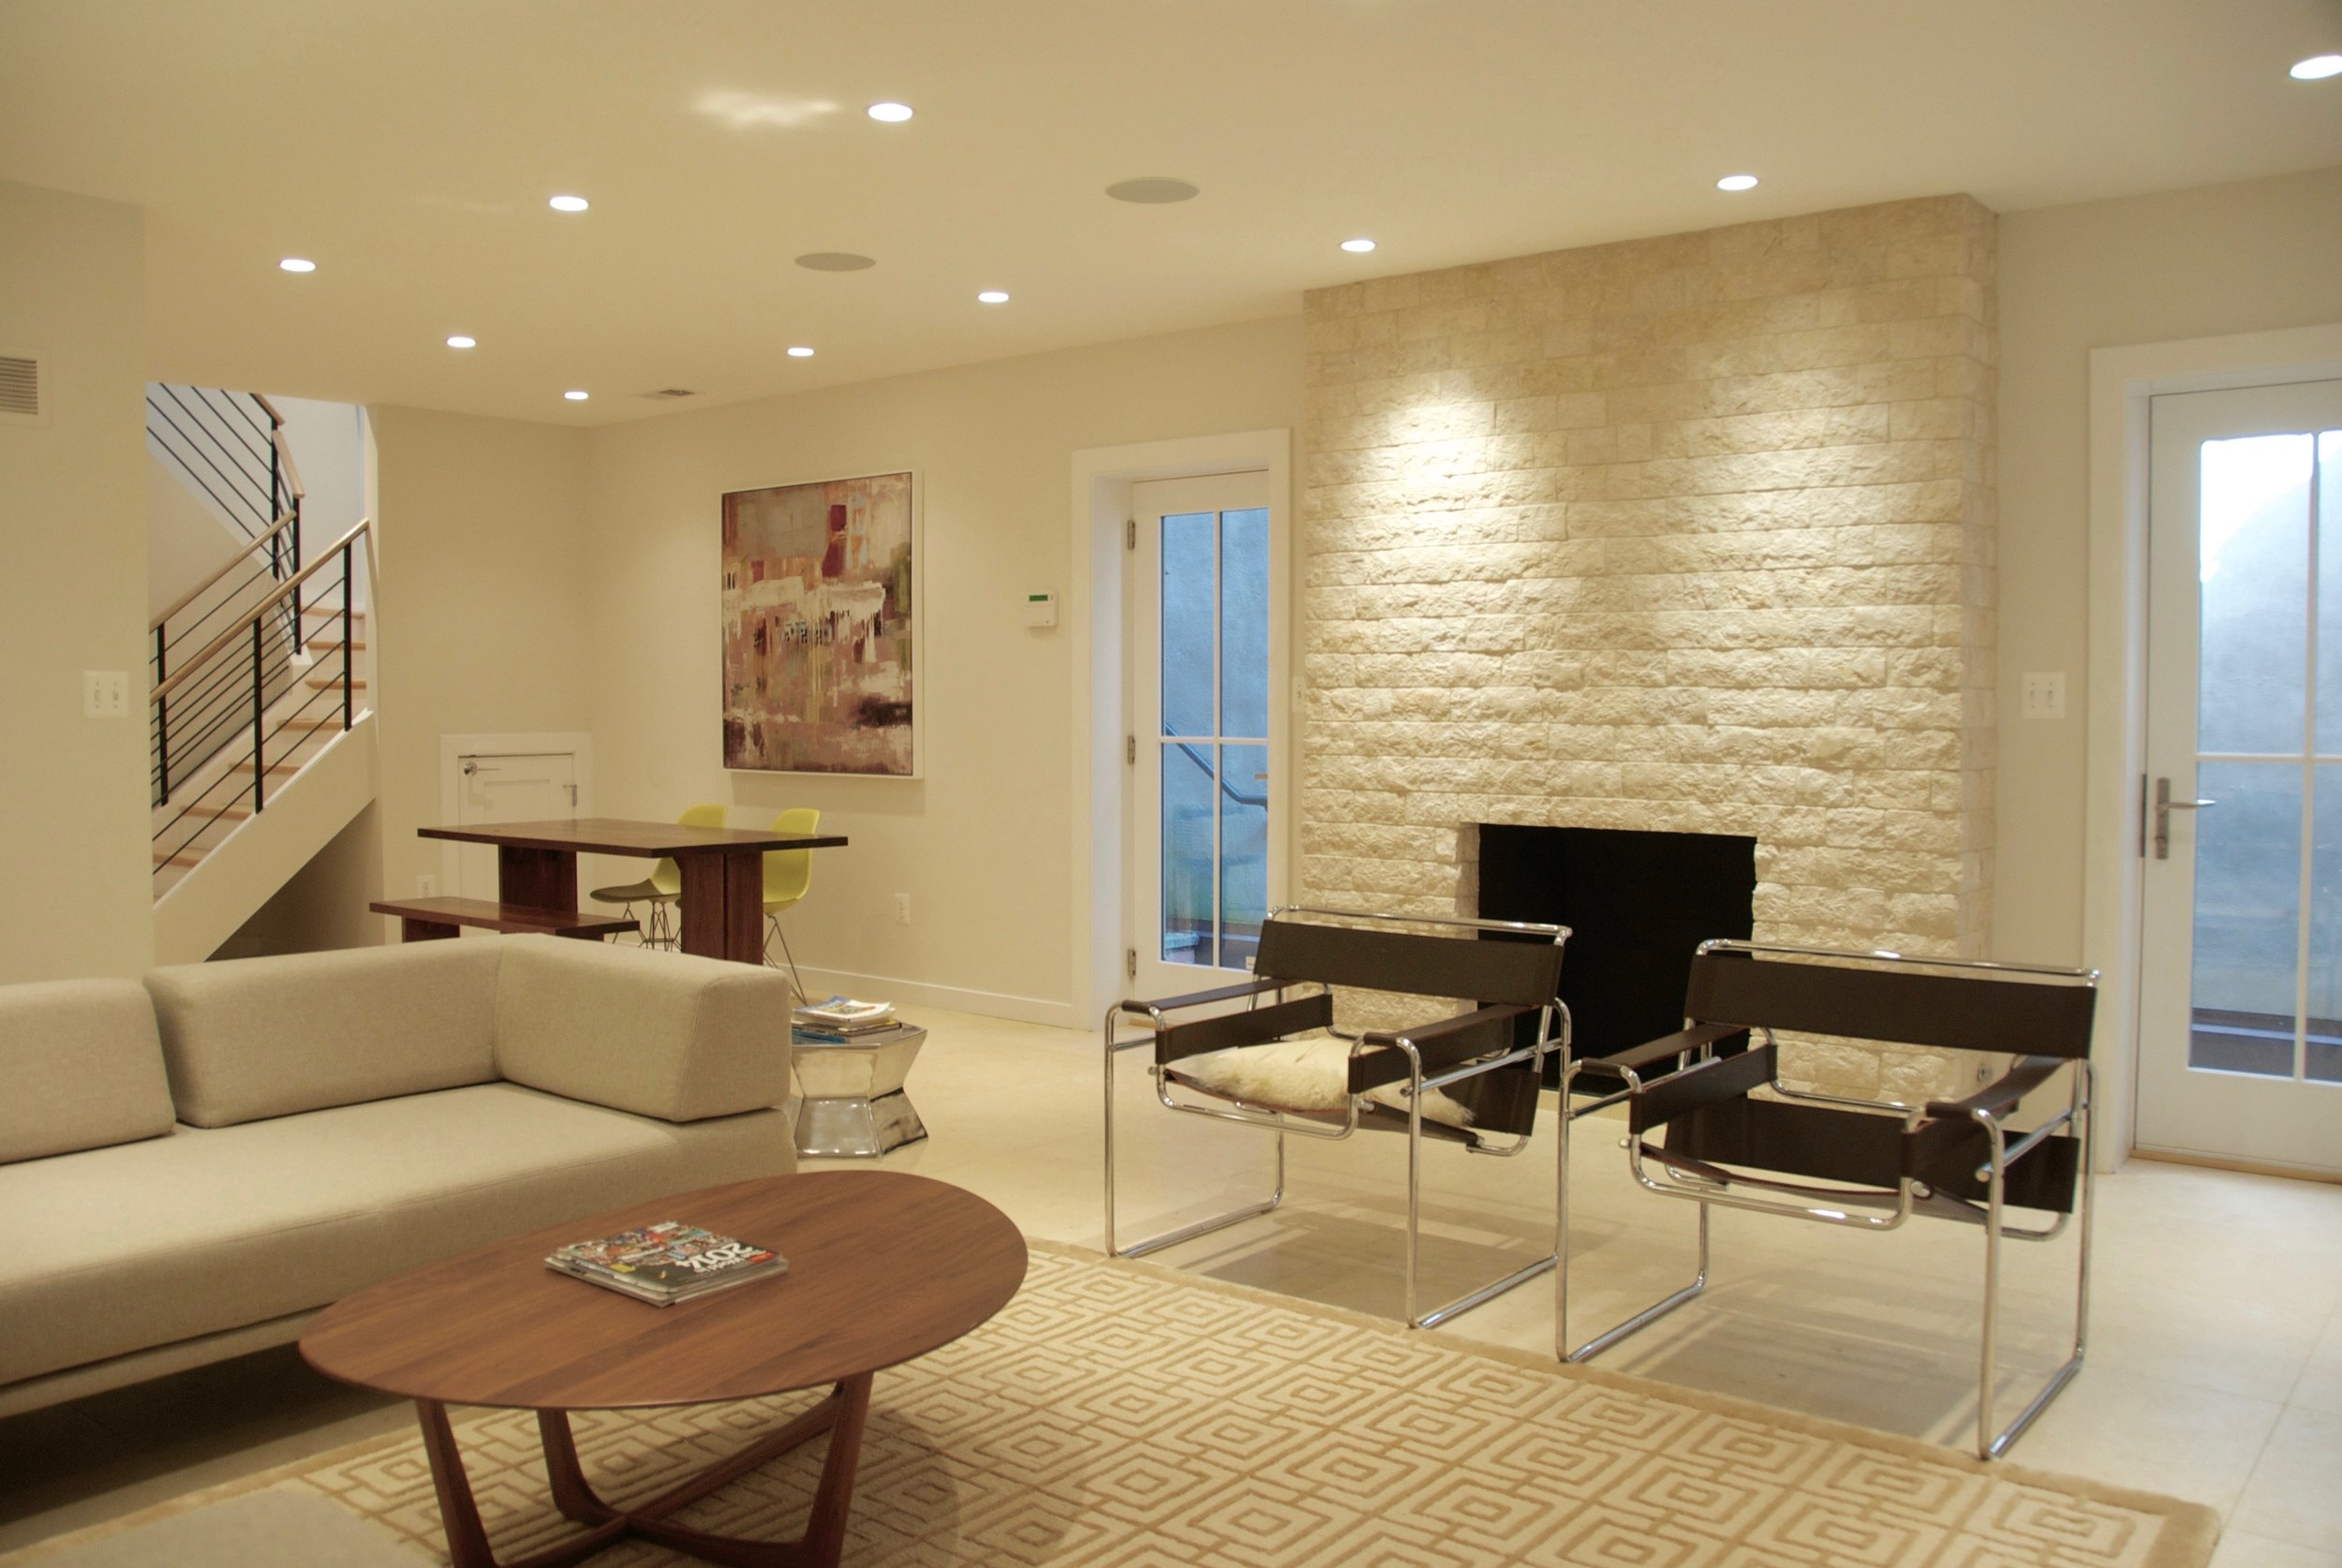 Interiors for a New House in Alexandria, VA